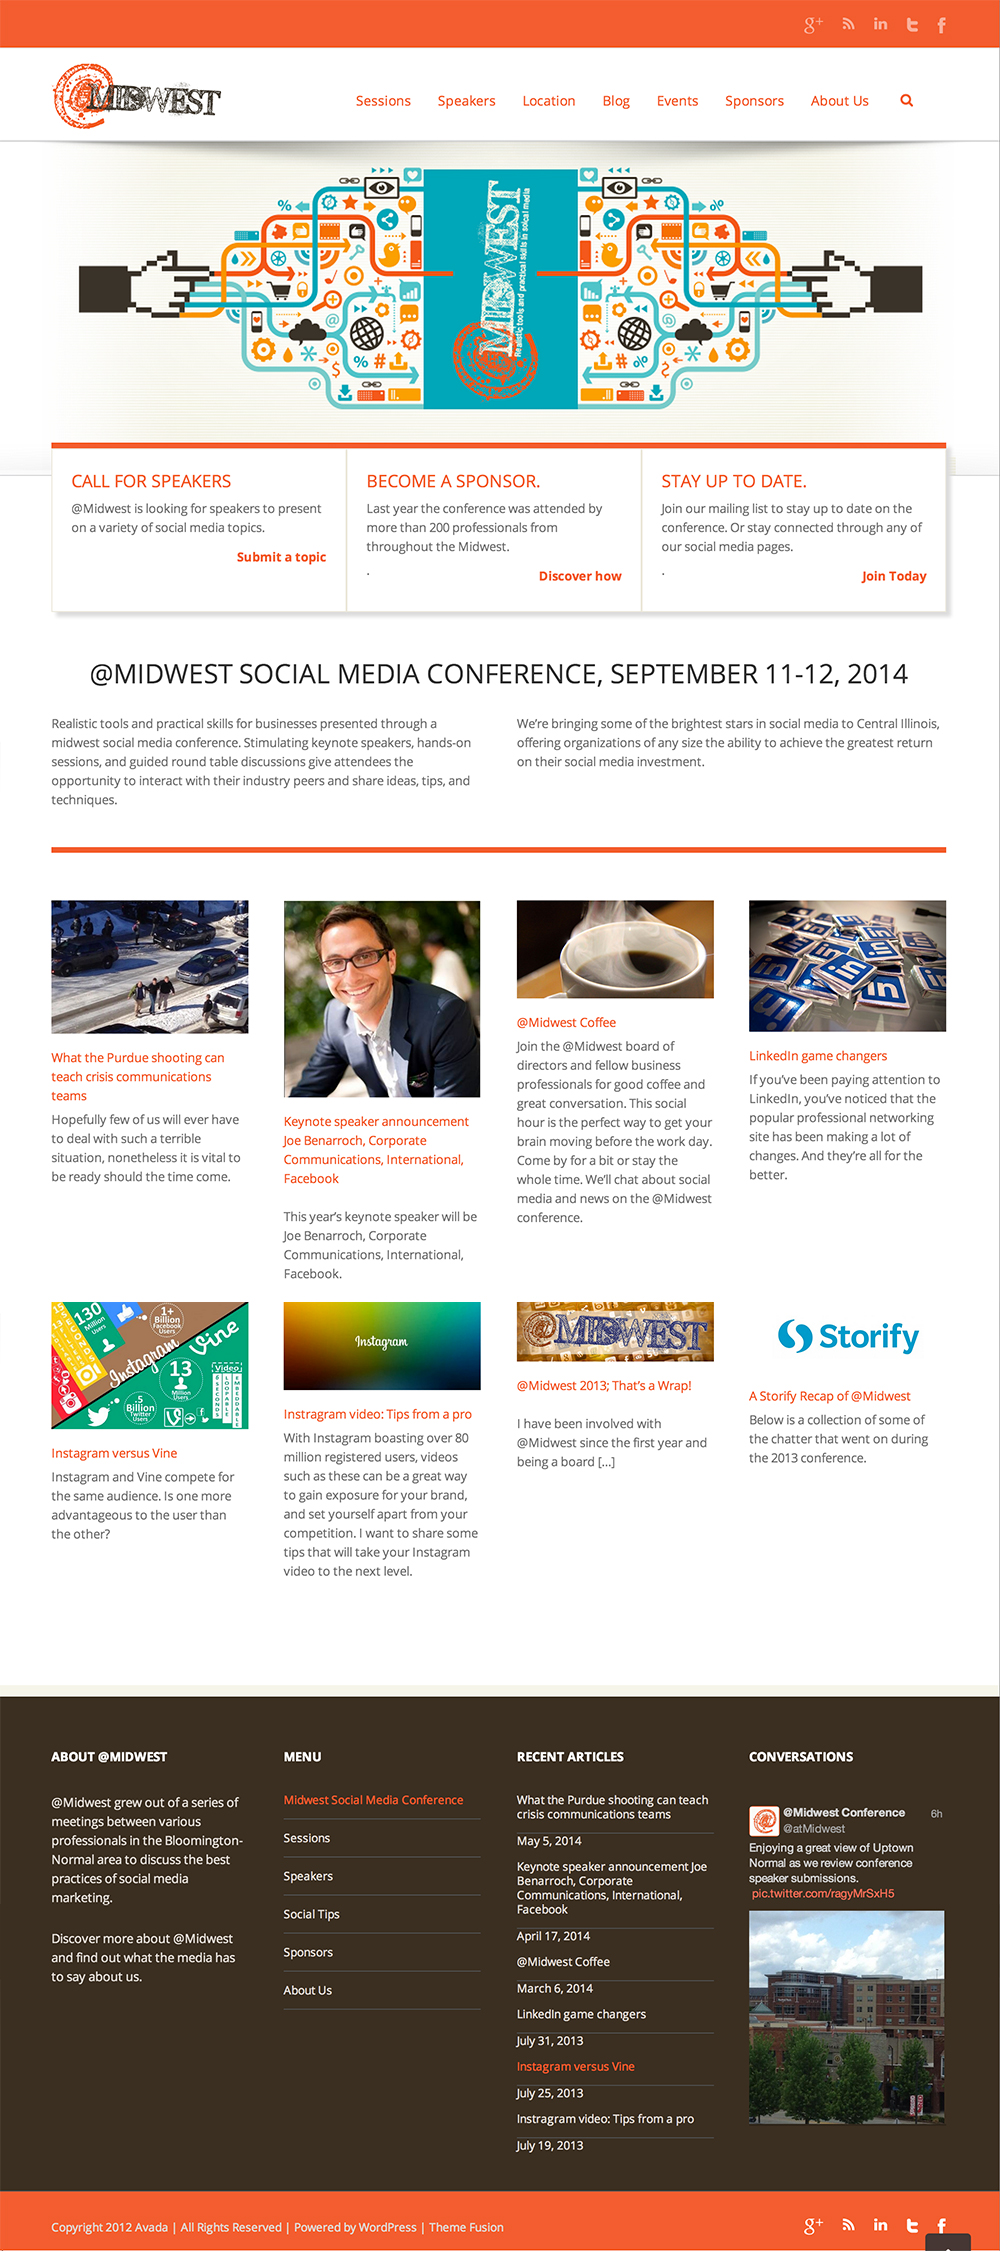 @Midwest Social Media Conference